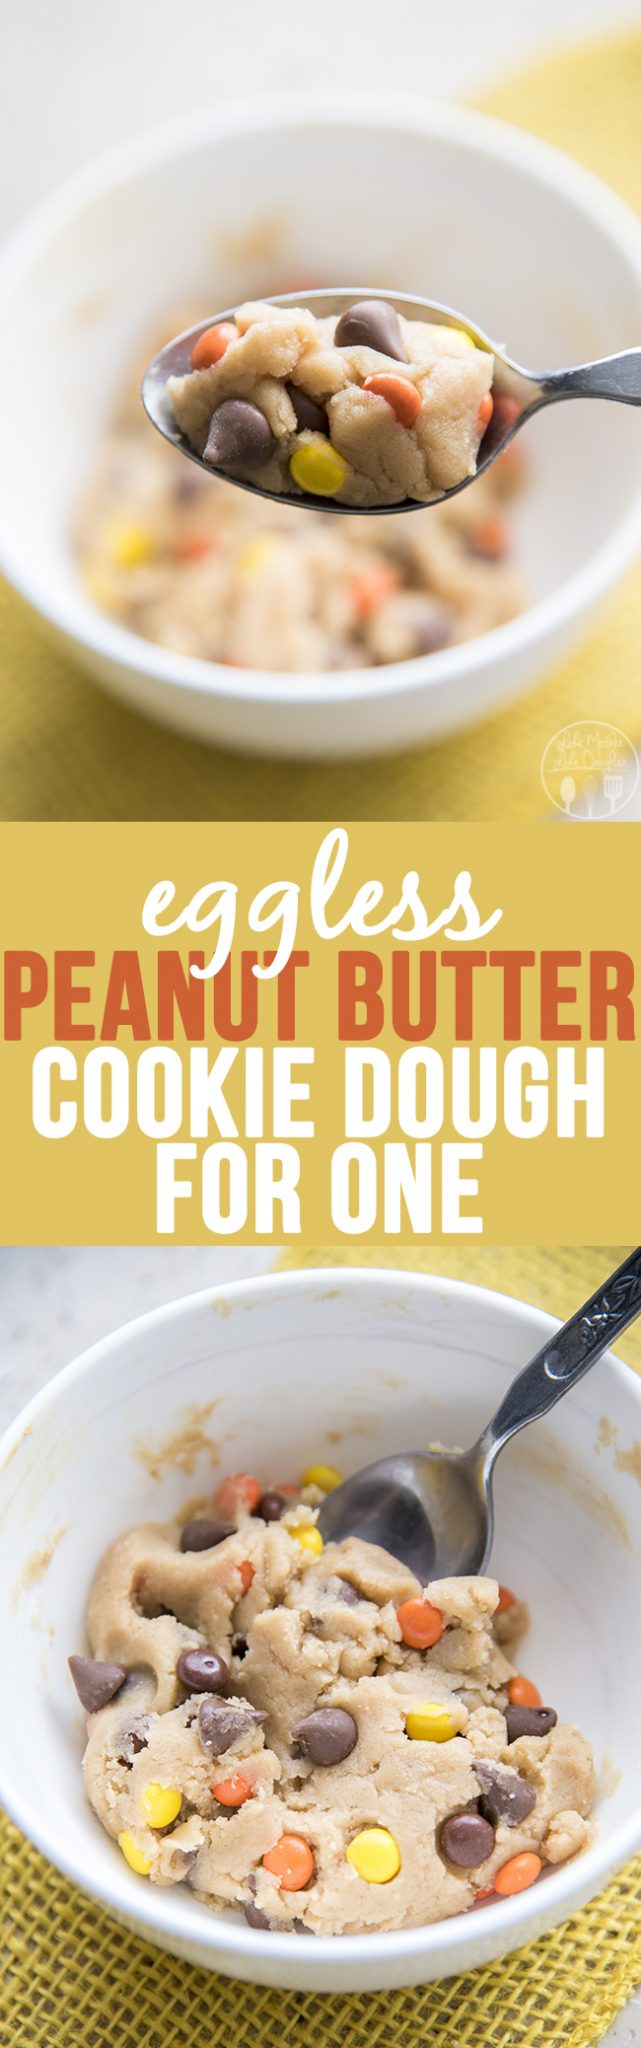 Peanut Butter Chocolate Chip Cookie Dough - LMLDFood